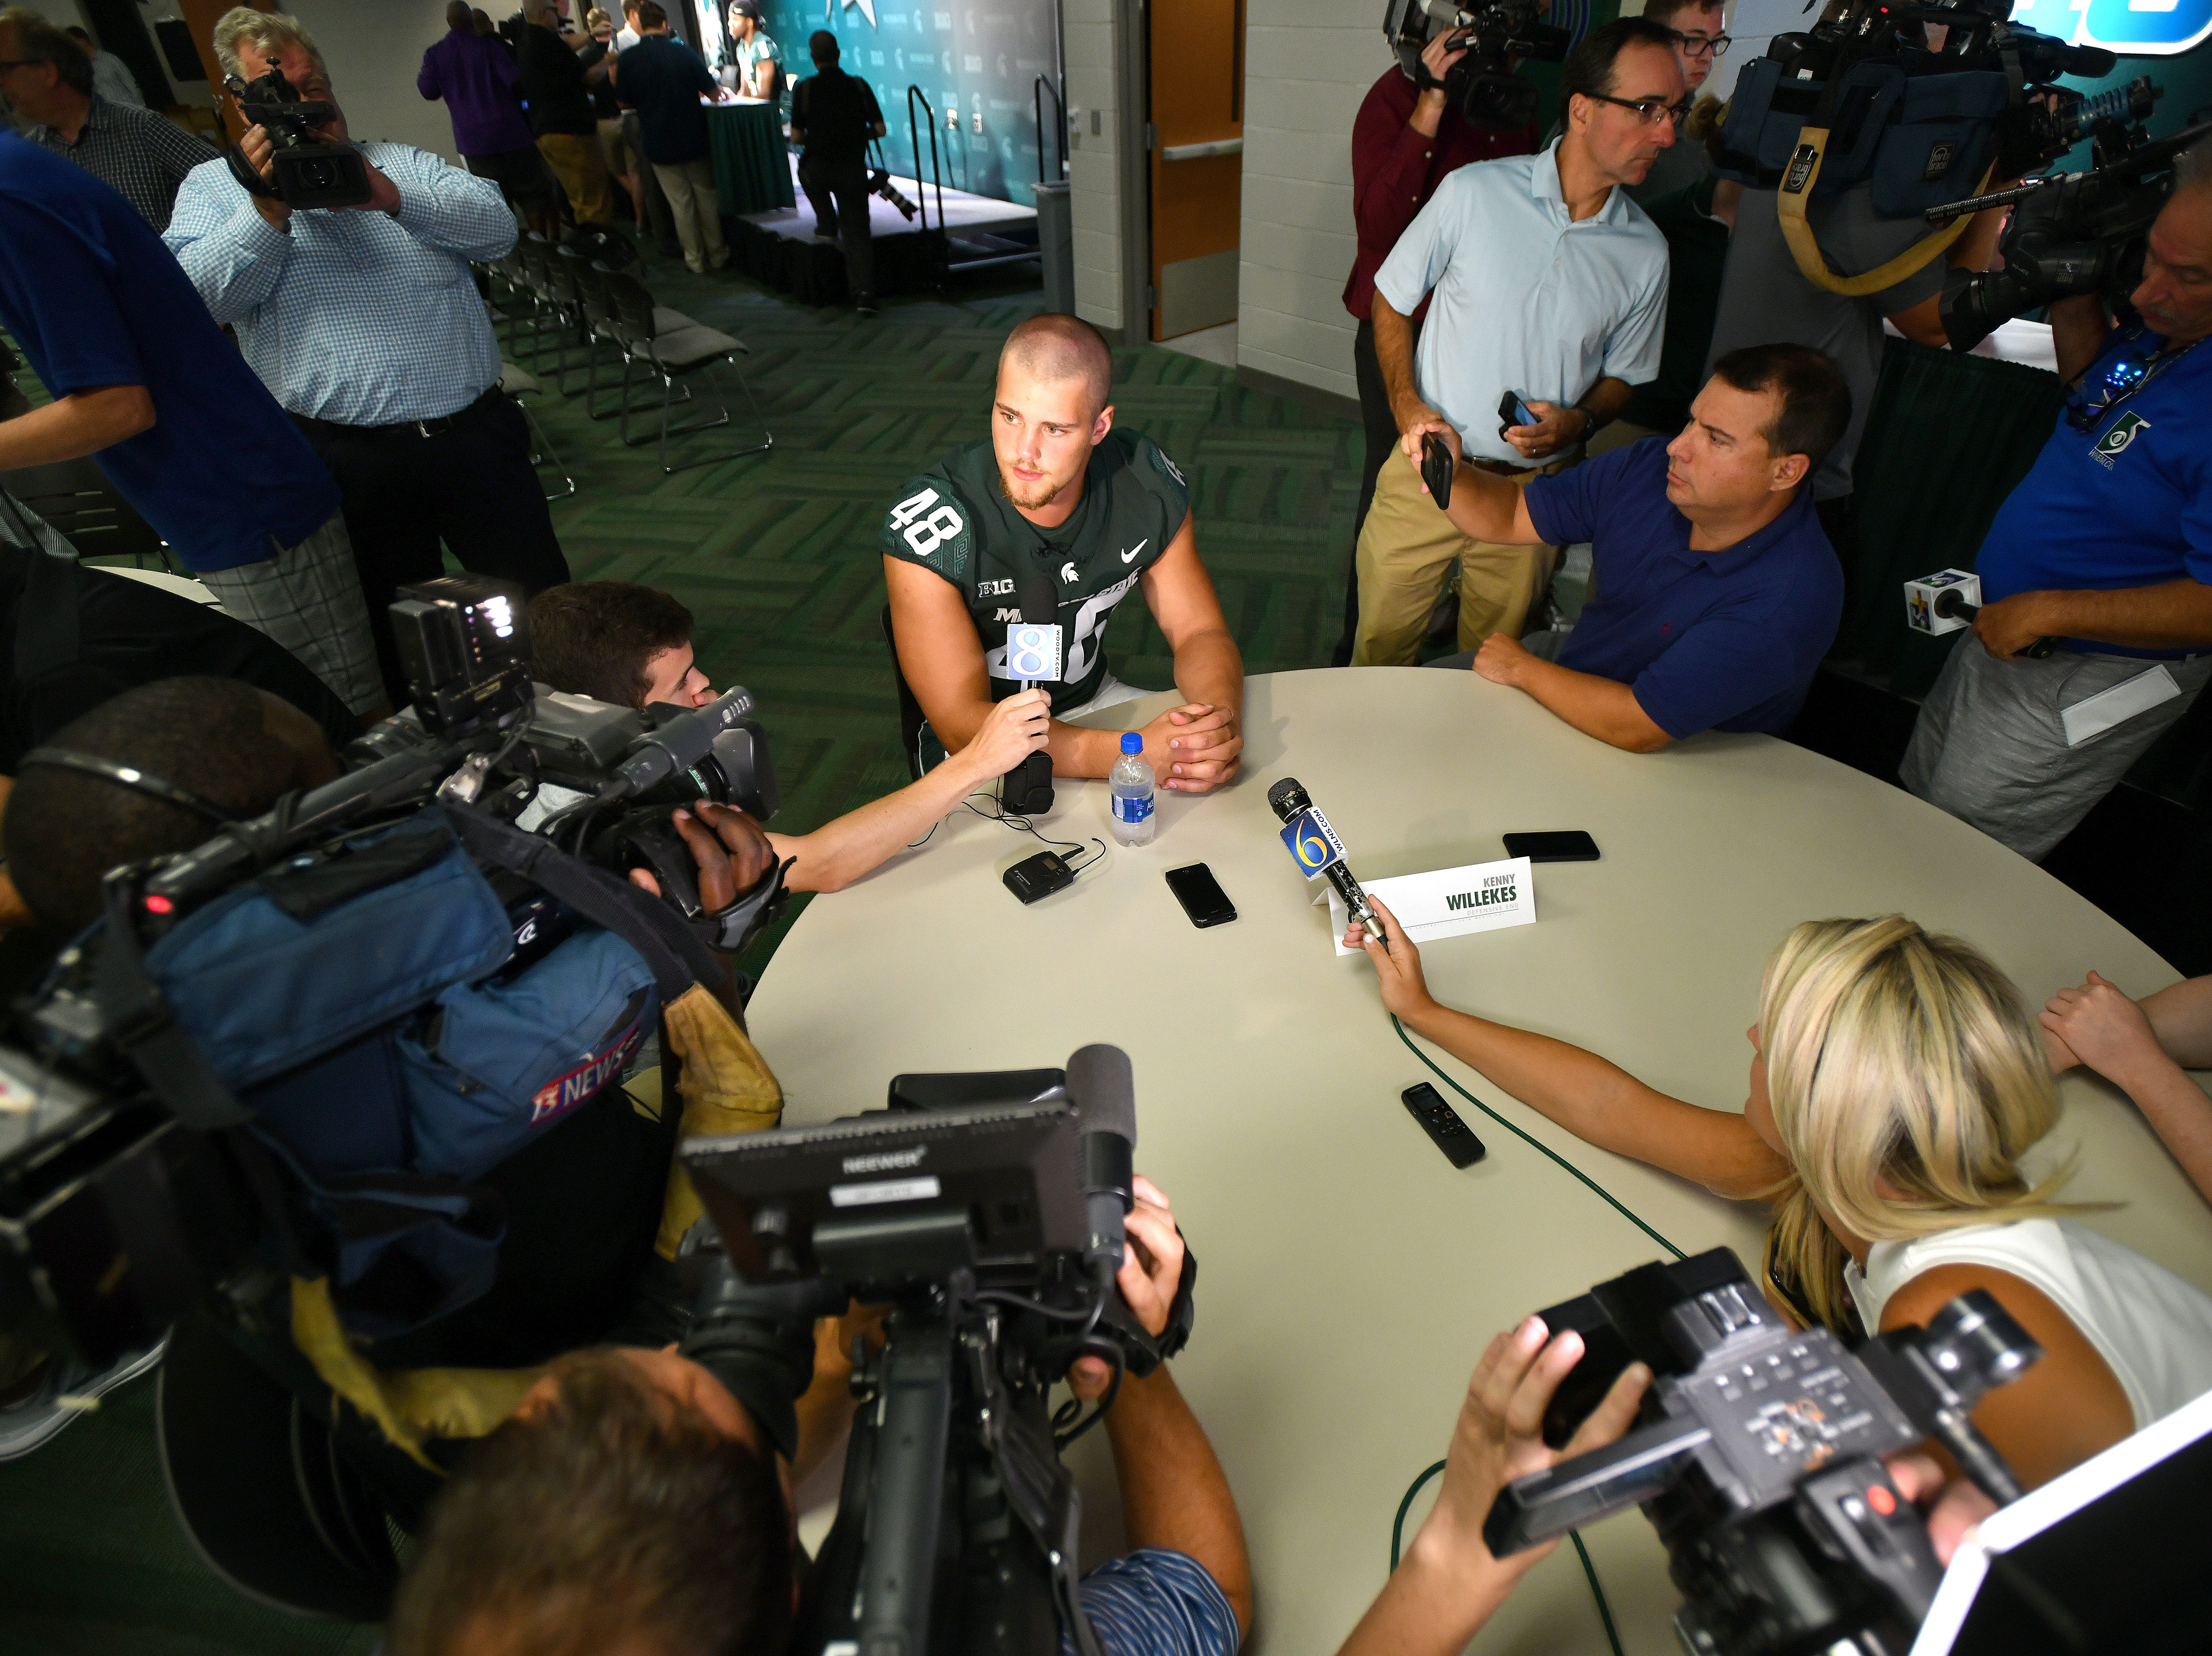 Michigan State defensive end Kenny Willekes is surrounded by the media at his table.